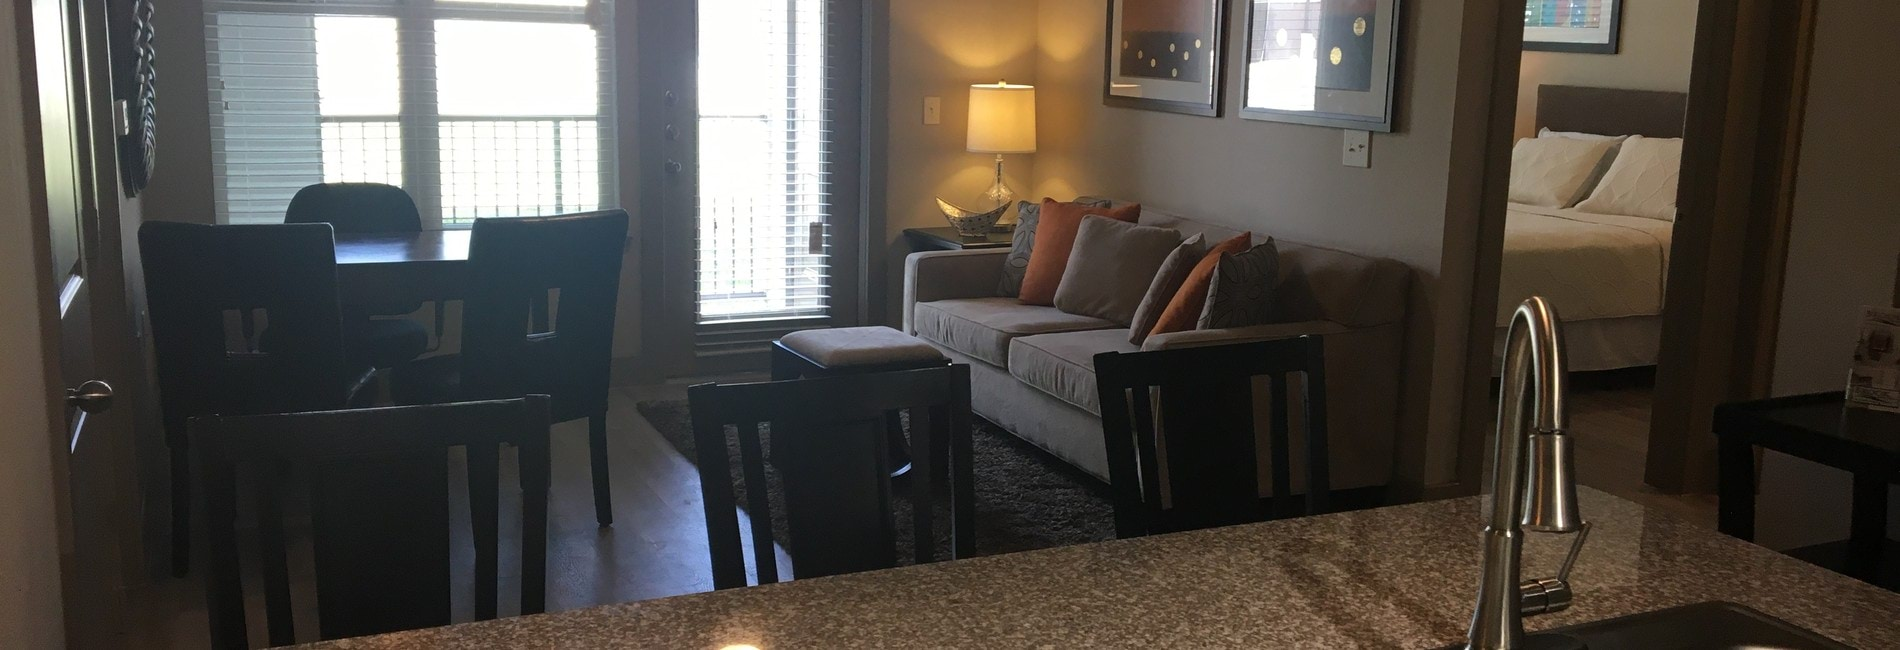 oaks at wayside new apartments in houston